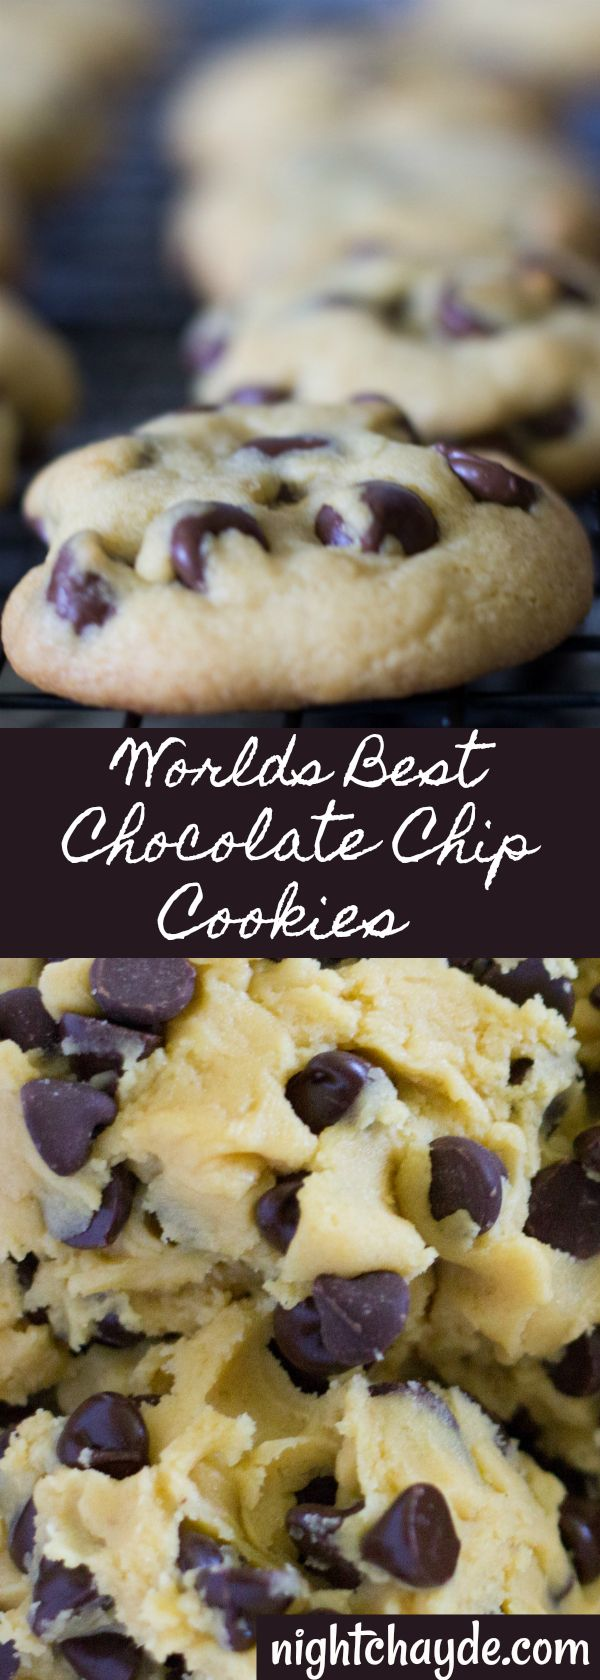 The Worlds Best Chocolate Chip Cookie: Chewy Warm and easy to make.